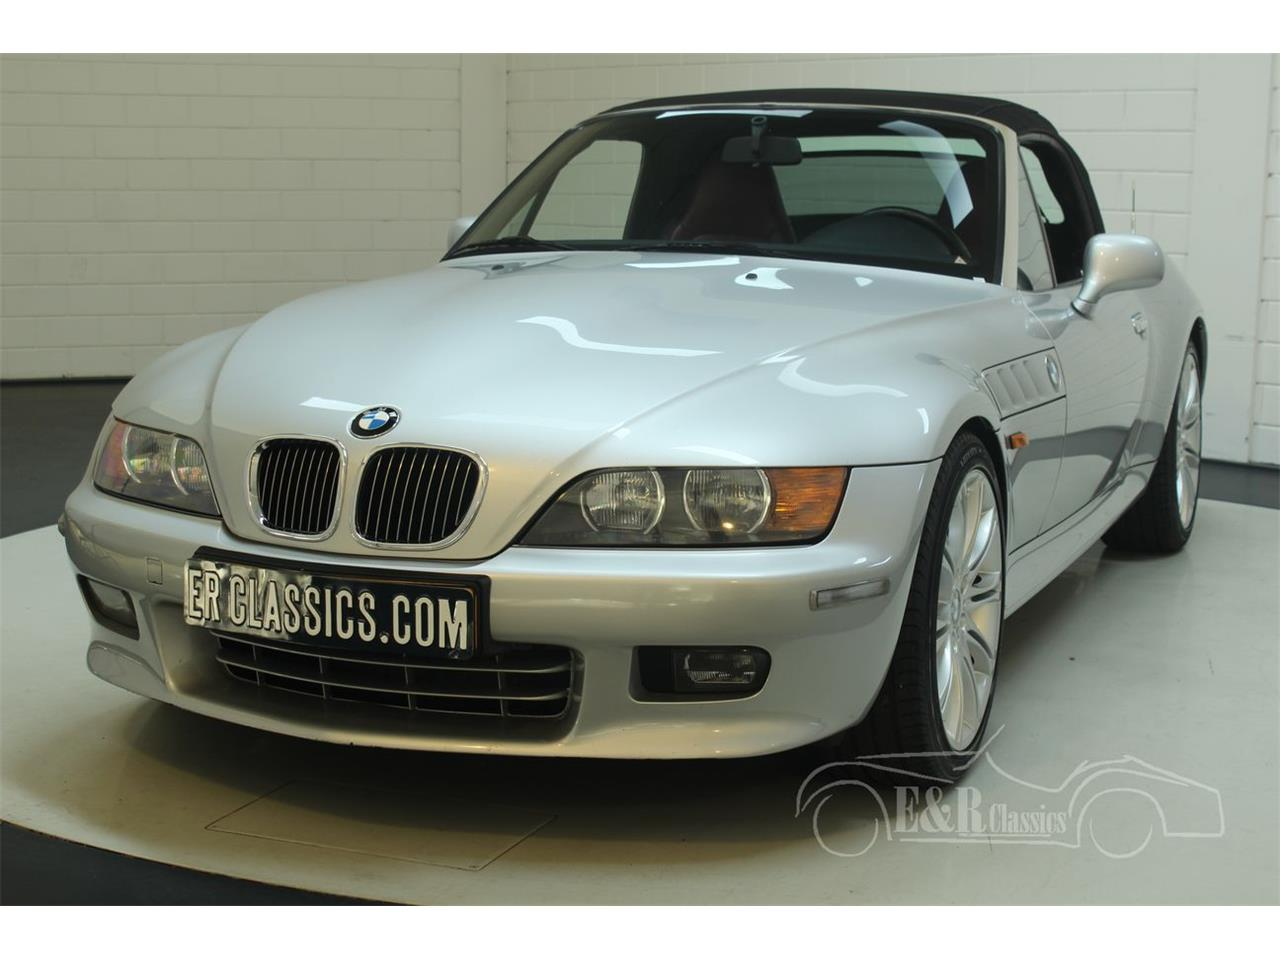 Large Picture of 2001 BMW Z3 Offered by E & R Classics - PNX1